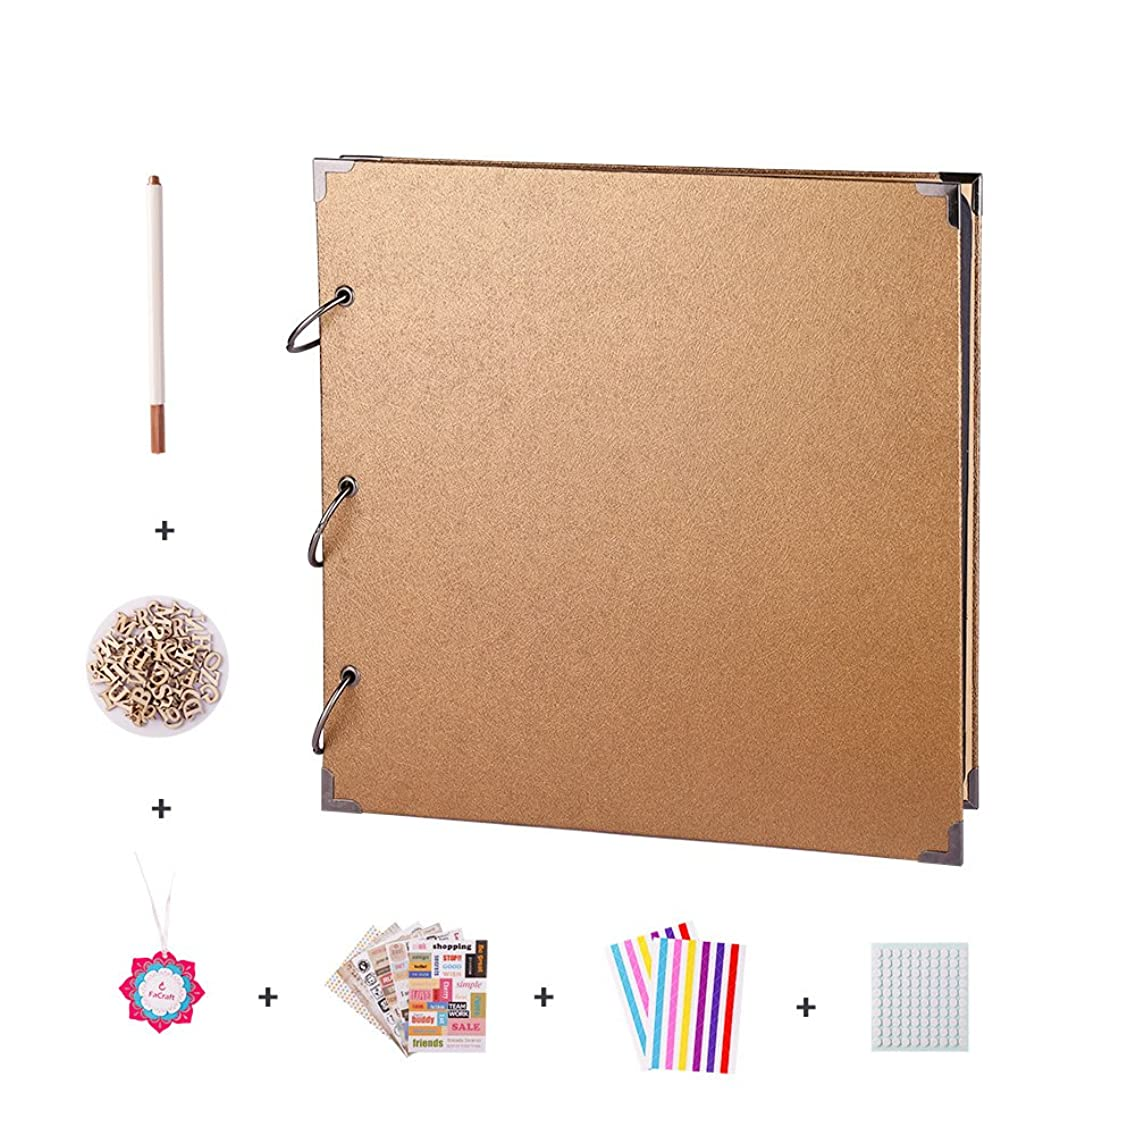 FaCraft Scrapbook Album with Scrapbooking Supplies (11x11 Gold)